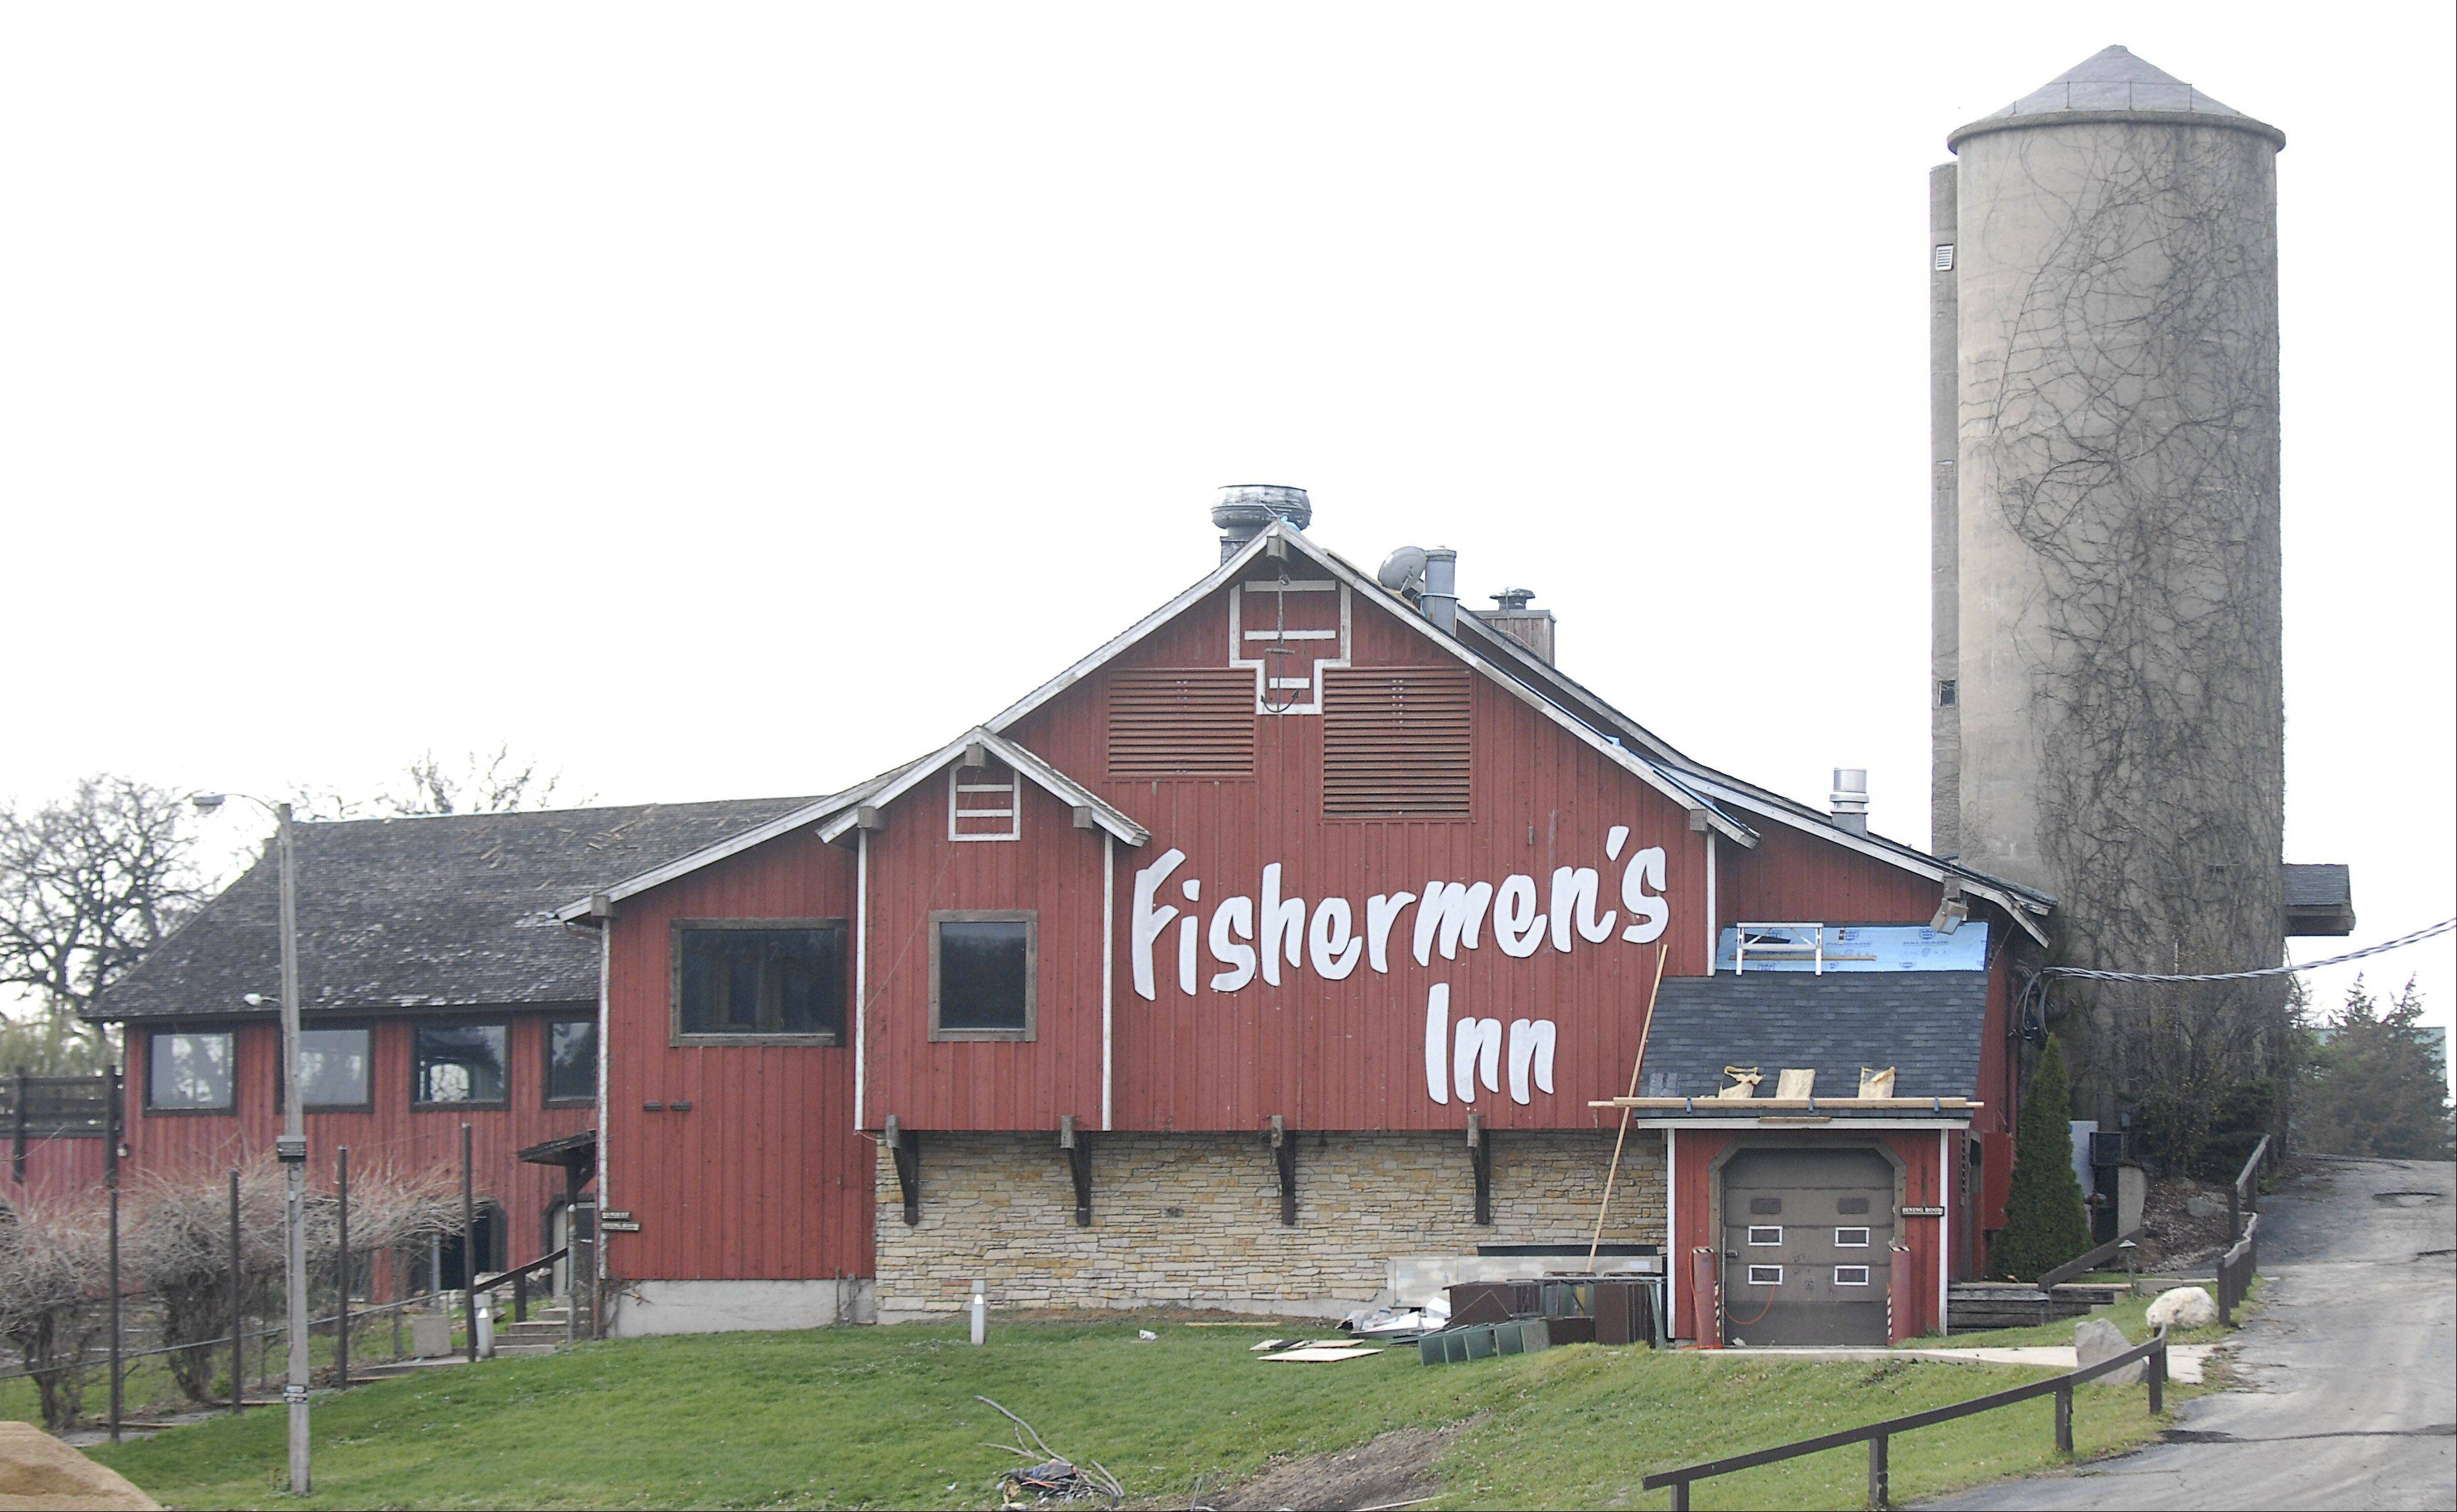 The Fishermen�s Inn in Elburn has new owners, who plan to reopen the restaurant sometime next year.